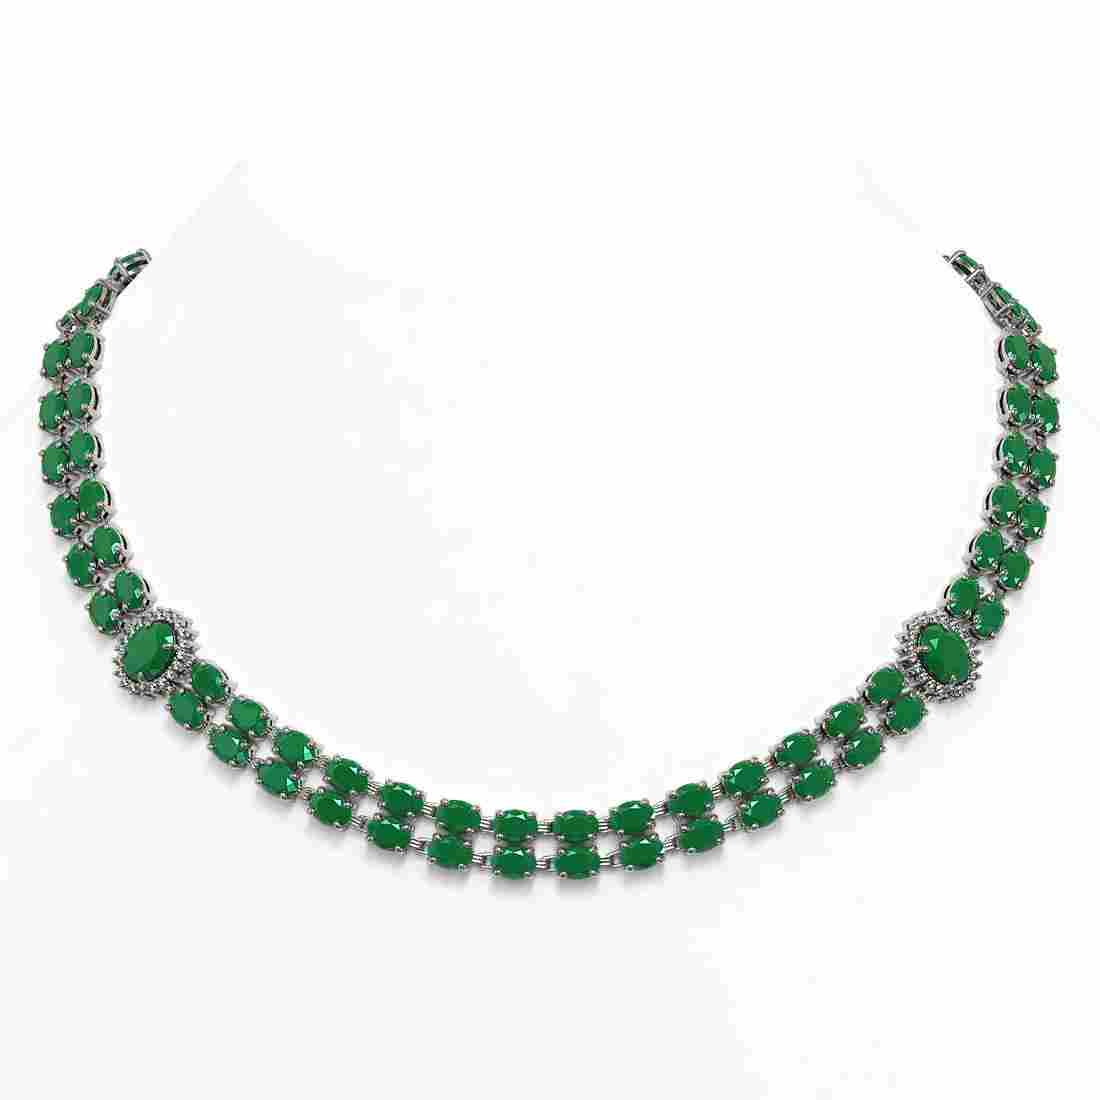 43.13 ctw Emerald & Diamond Necklace 14K White Gold -